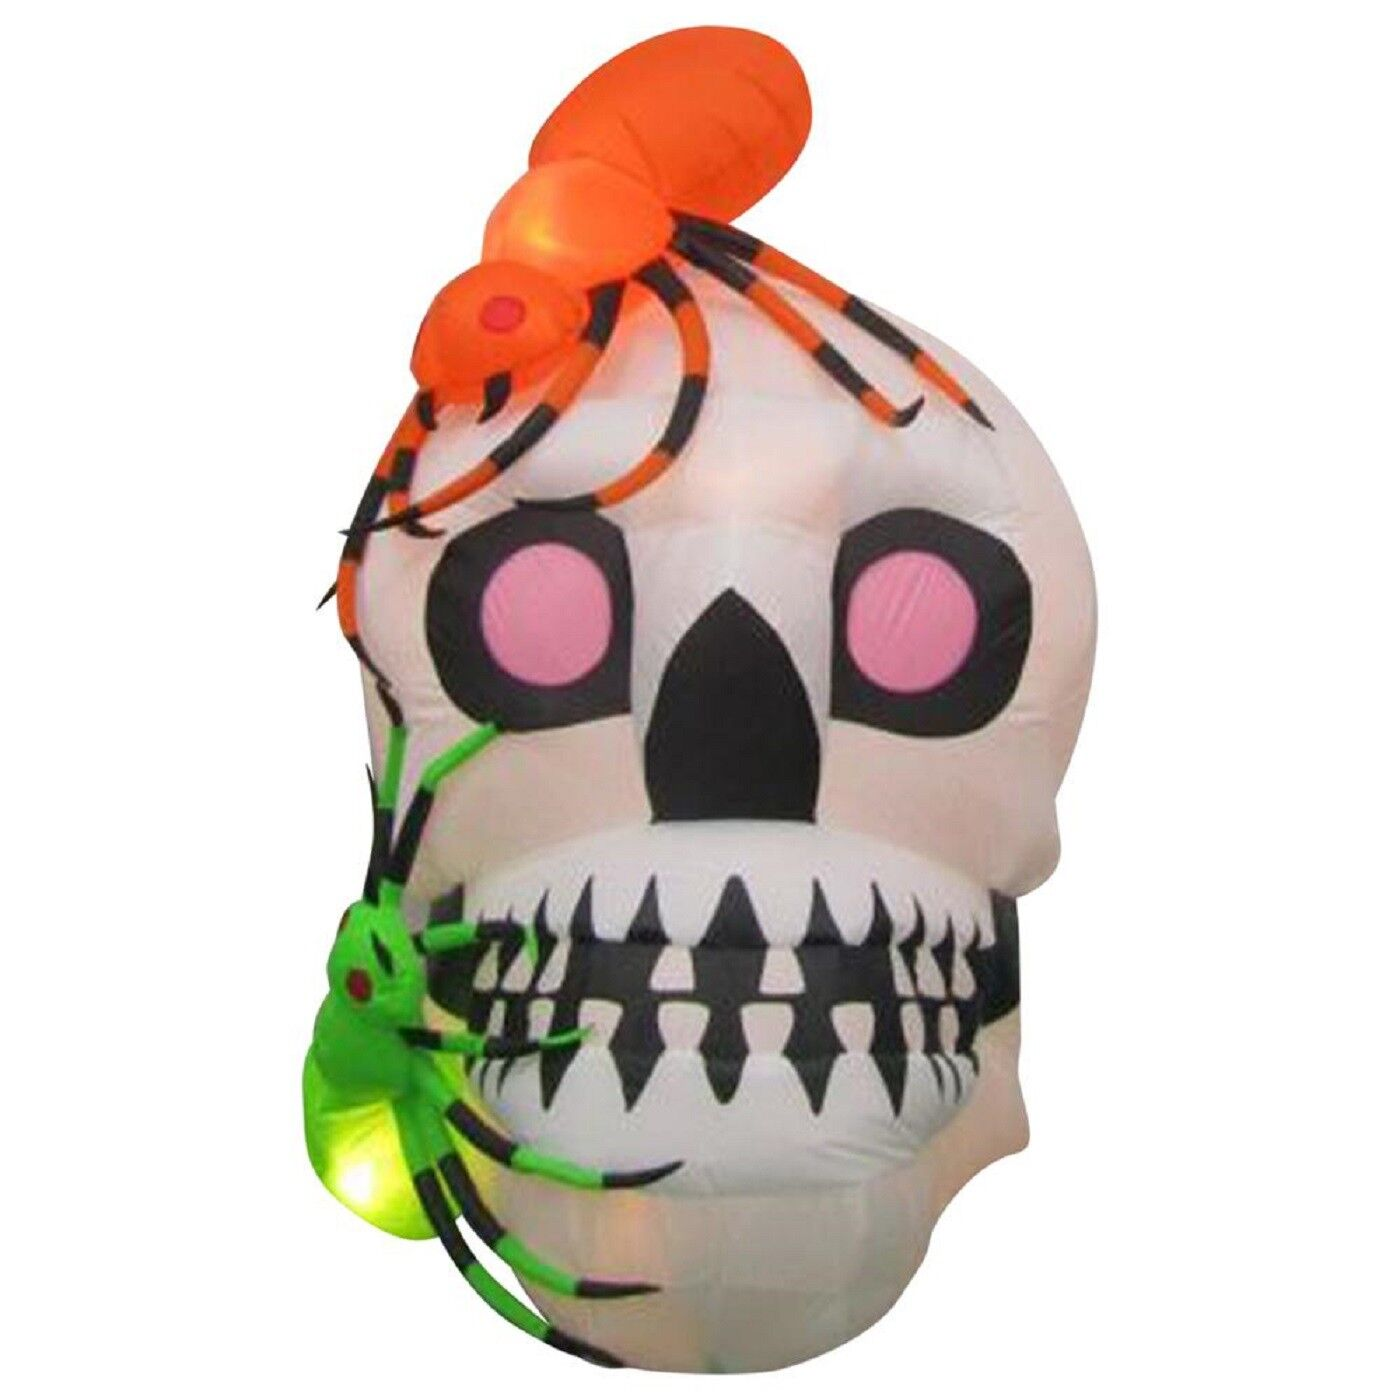 Halloween Inflatable Skull With Spiders By Gemmy